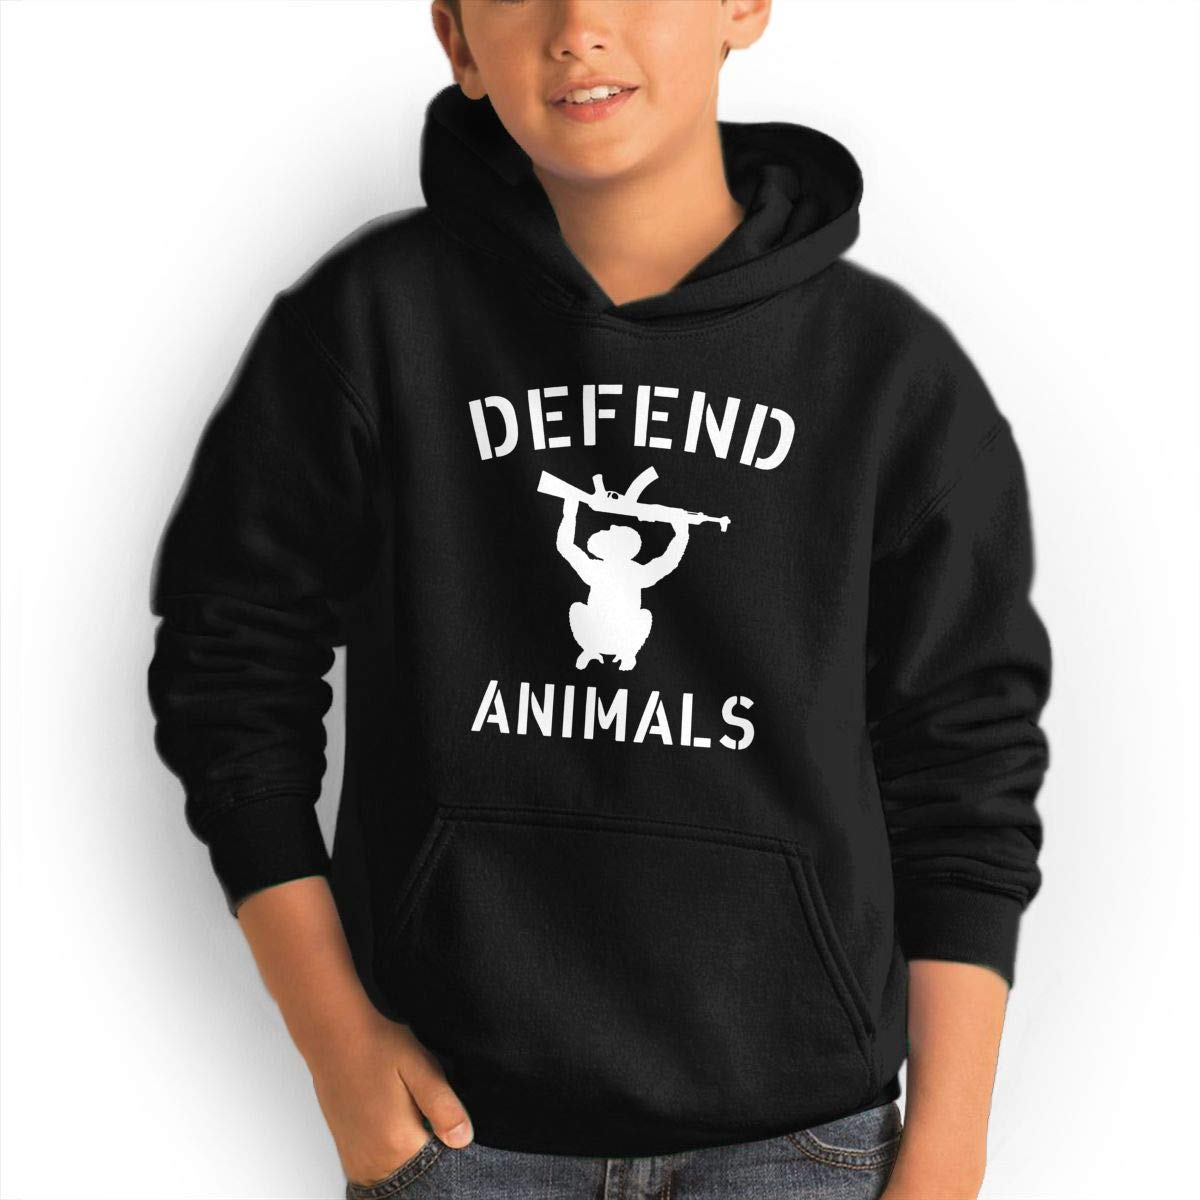 Defend Animals Youth Boys/Girls Hoodie Sweatshirt Hooded with Pocket by GUFEIFEIN